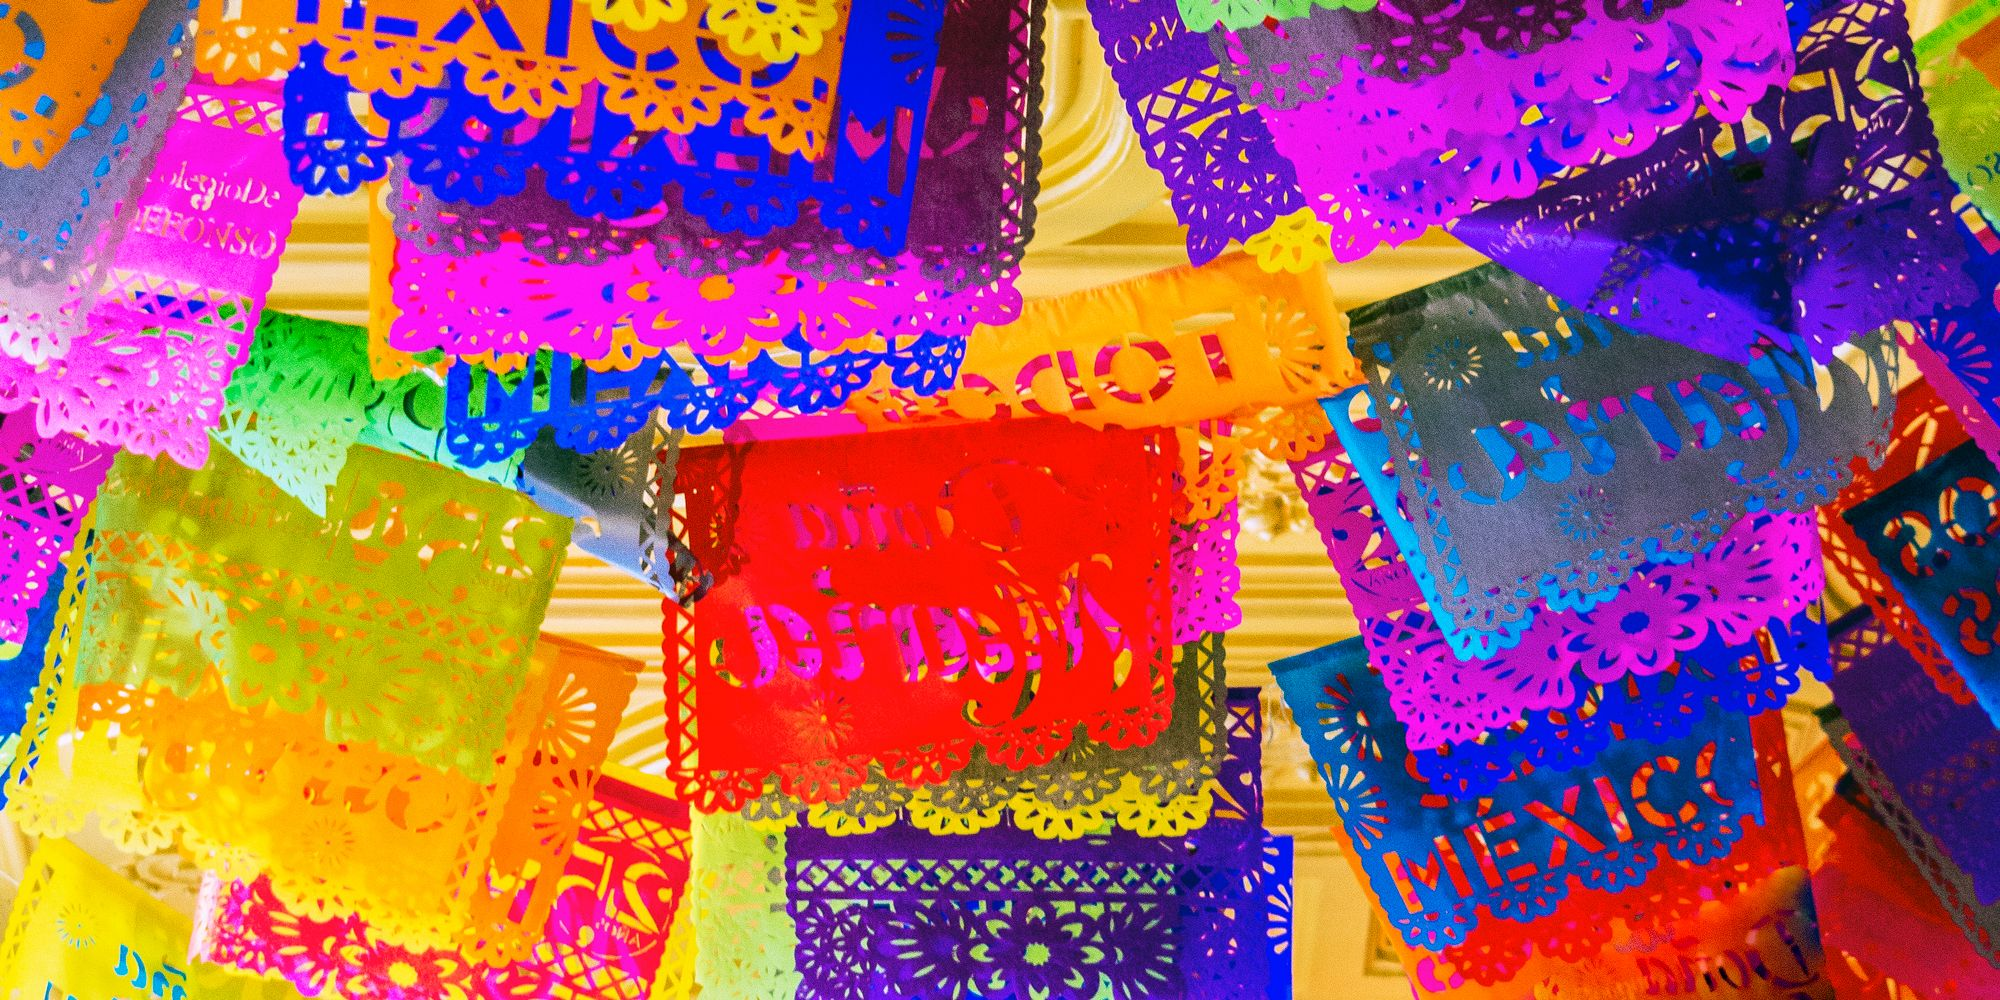 The Best Day of the Dead Decorations for Throwing Your Liveliest Party Yet